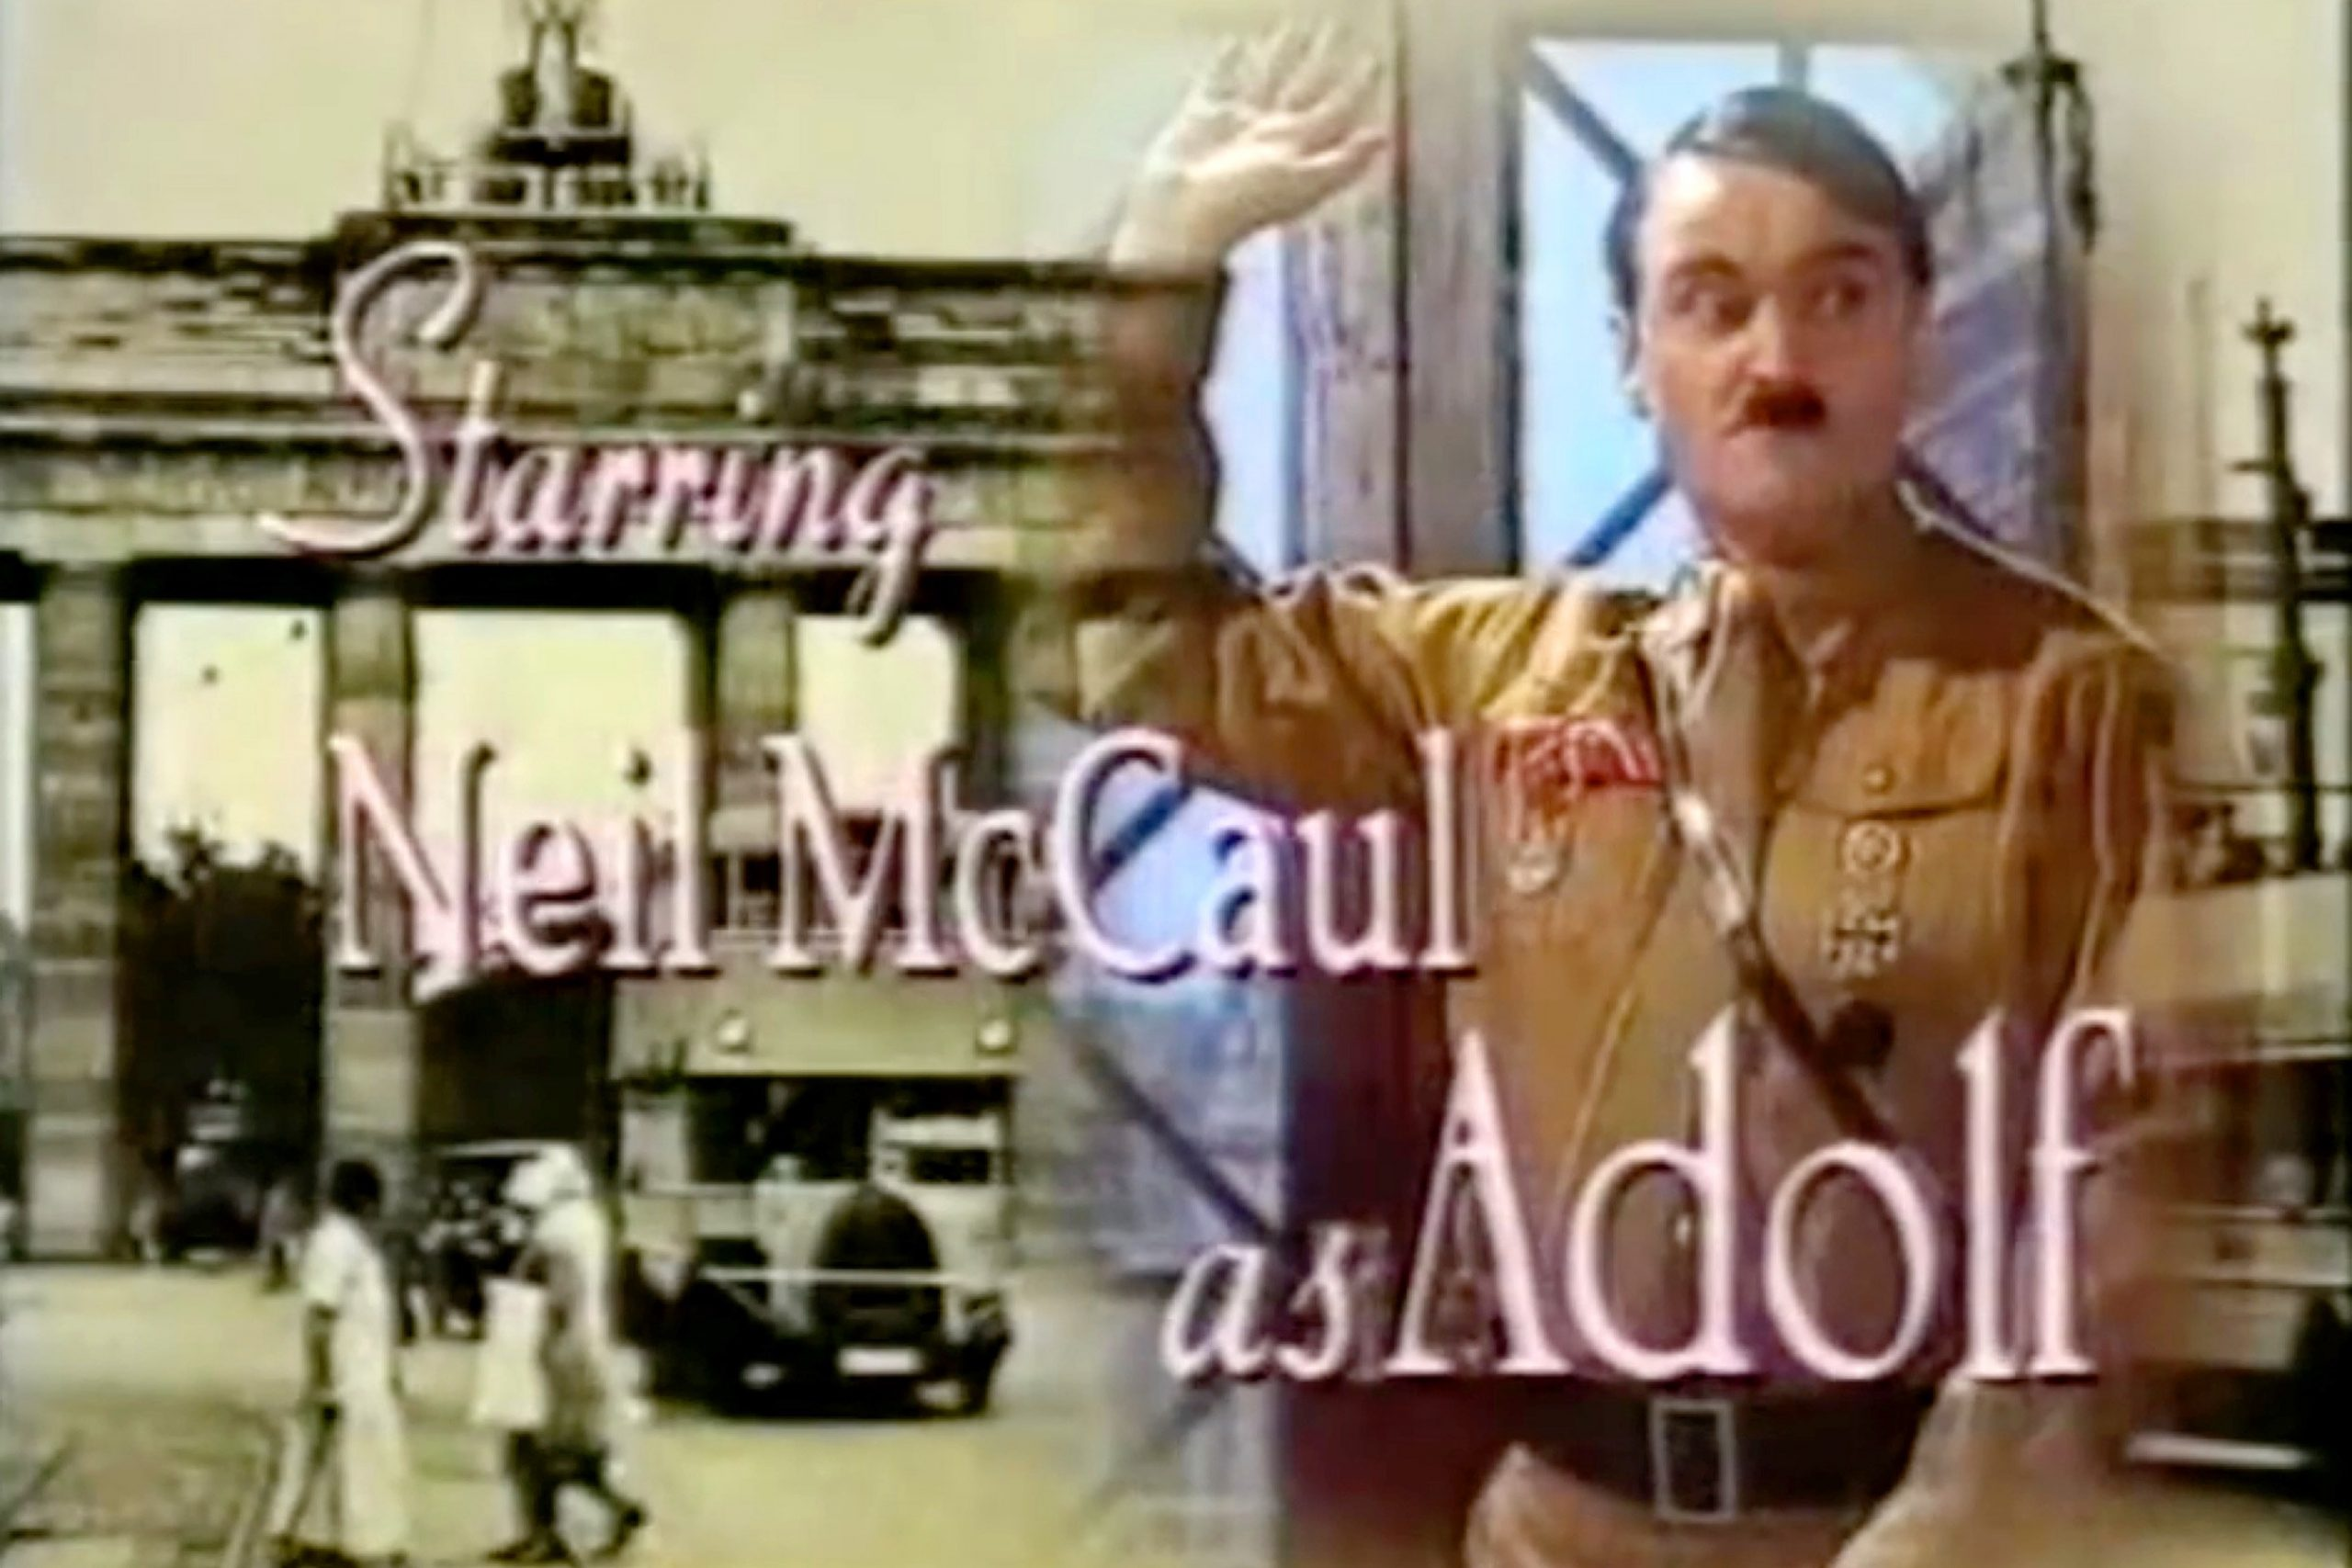 Heil Honey, I'm Home: The Hitler Sitcom That Lasted One Episode